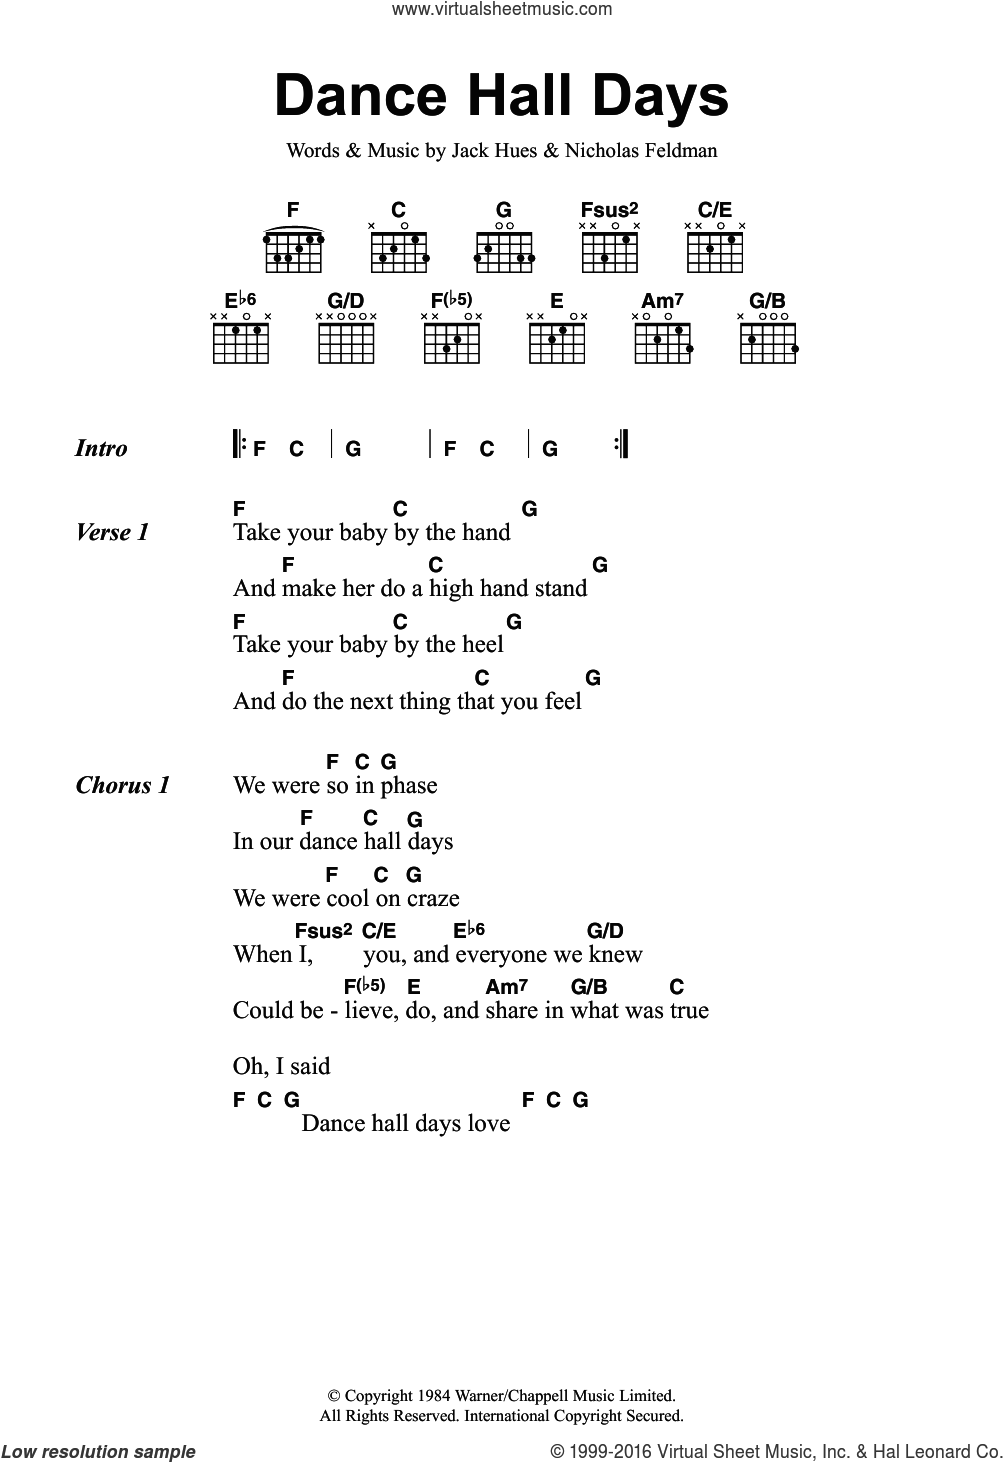 Dance Hall Days sheet music for guitar (chords) by Wang Chung, Jack Hues and Nicholas Feldman, intermediate skill level